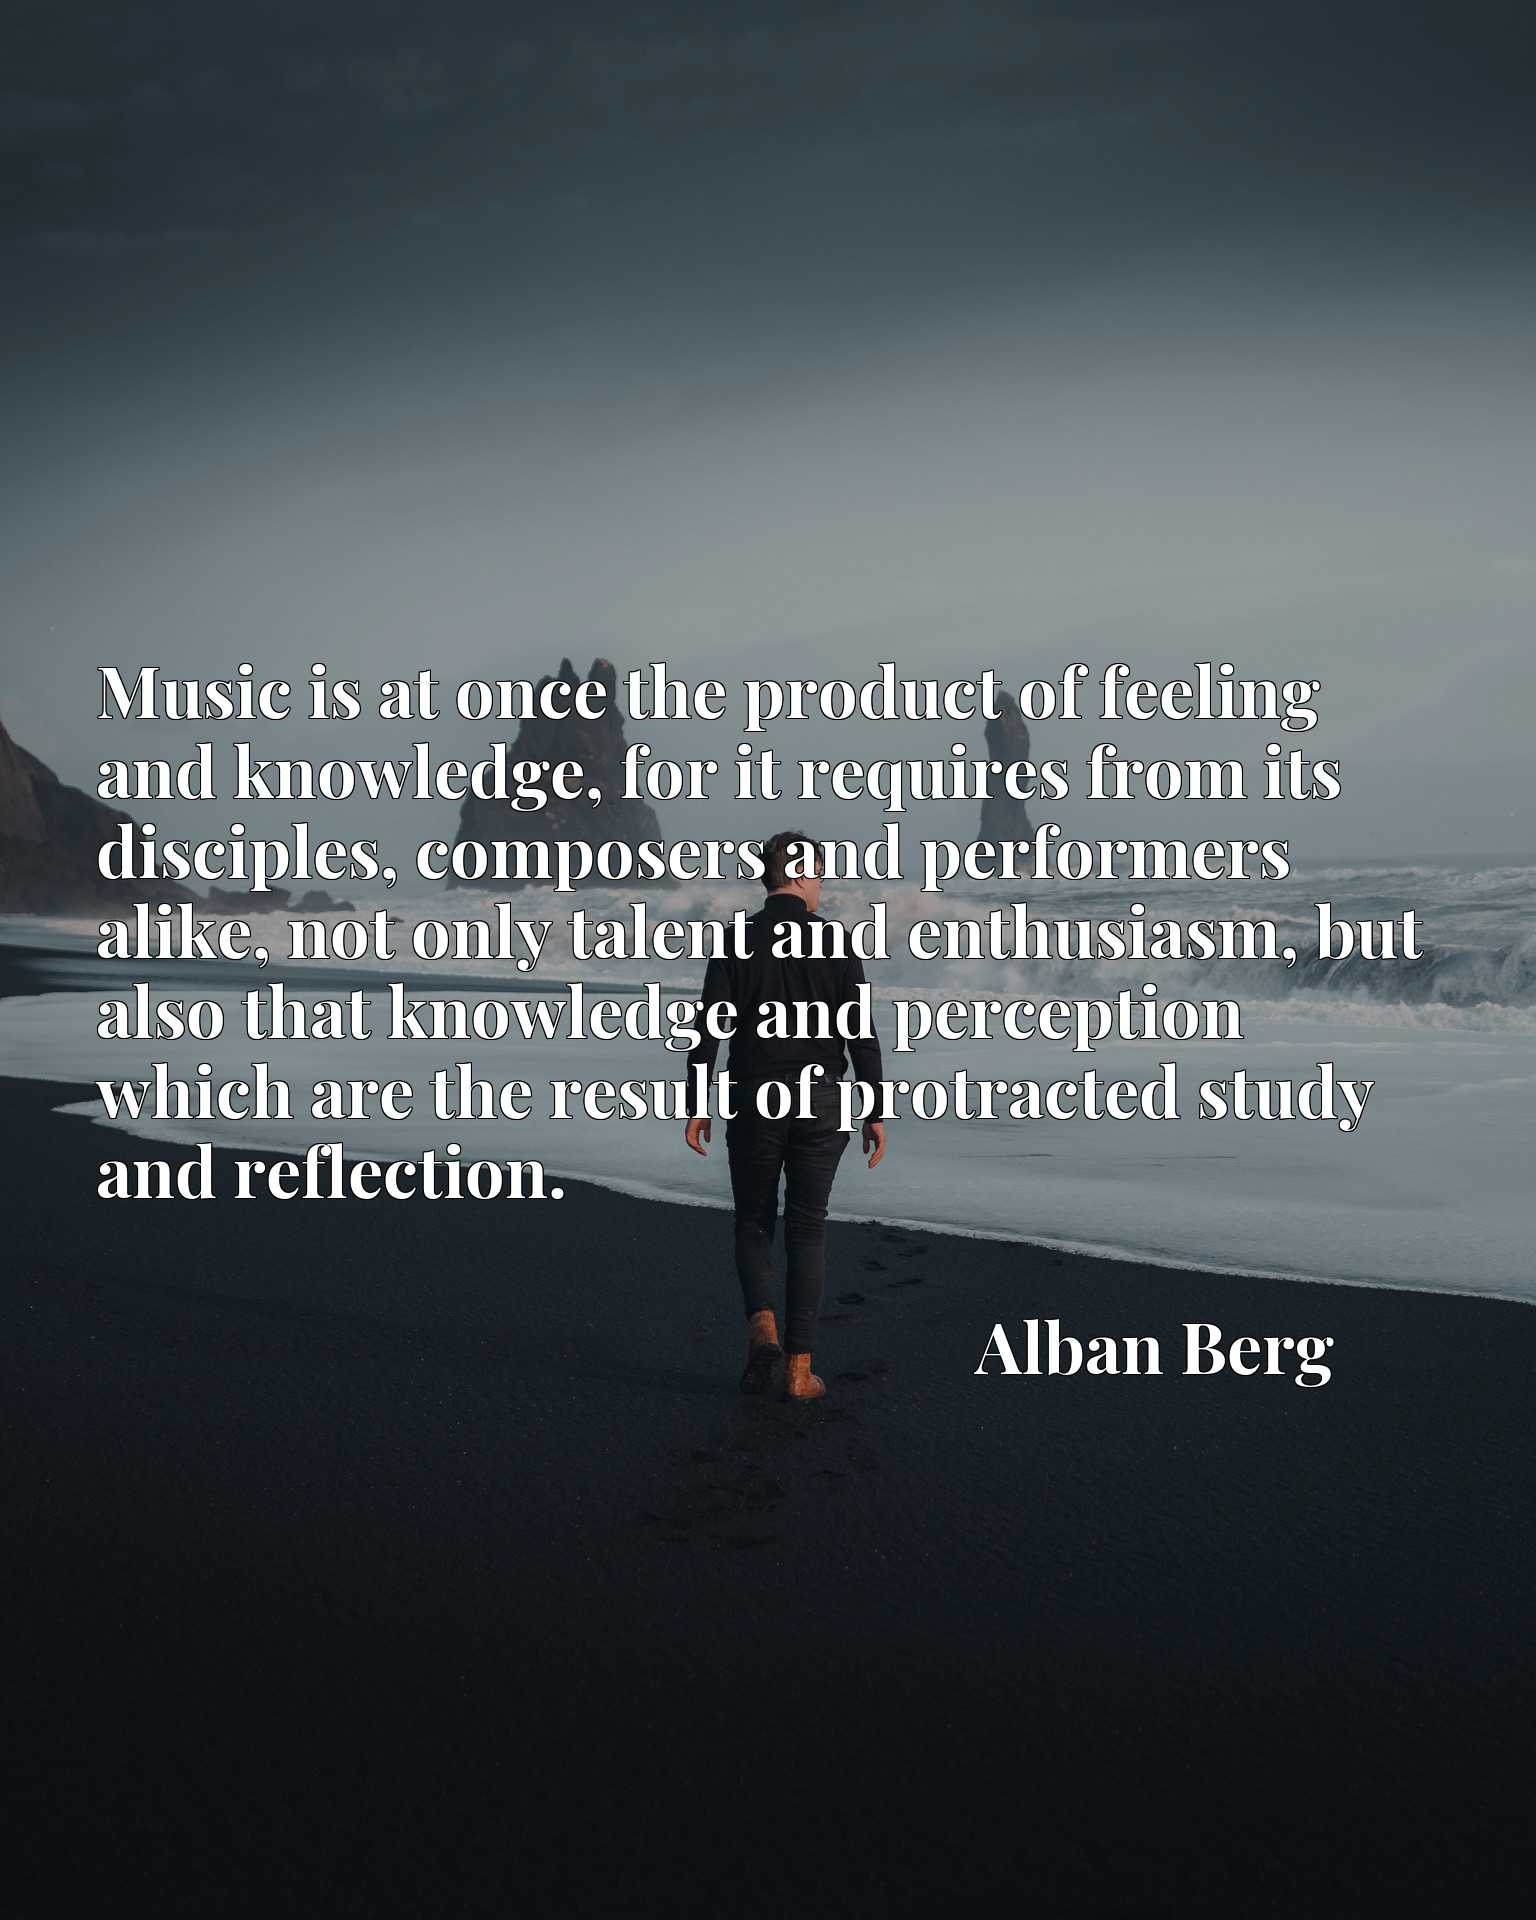 Quote Picture :Music is at once the product of feeling and knowledge, for it requires from its disciples, composers and performers alike, not only talent and enthusiasm, but also that knowledge and perception which are the result of protracted study and reflection.